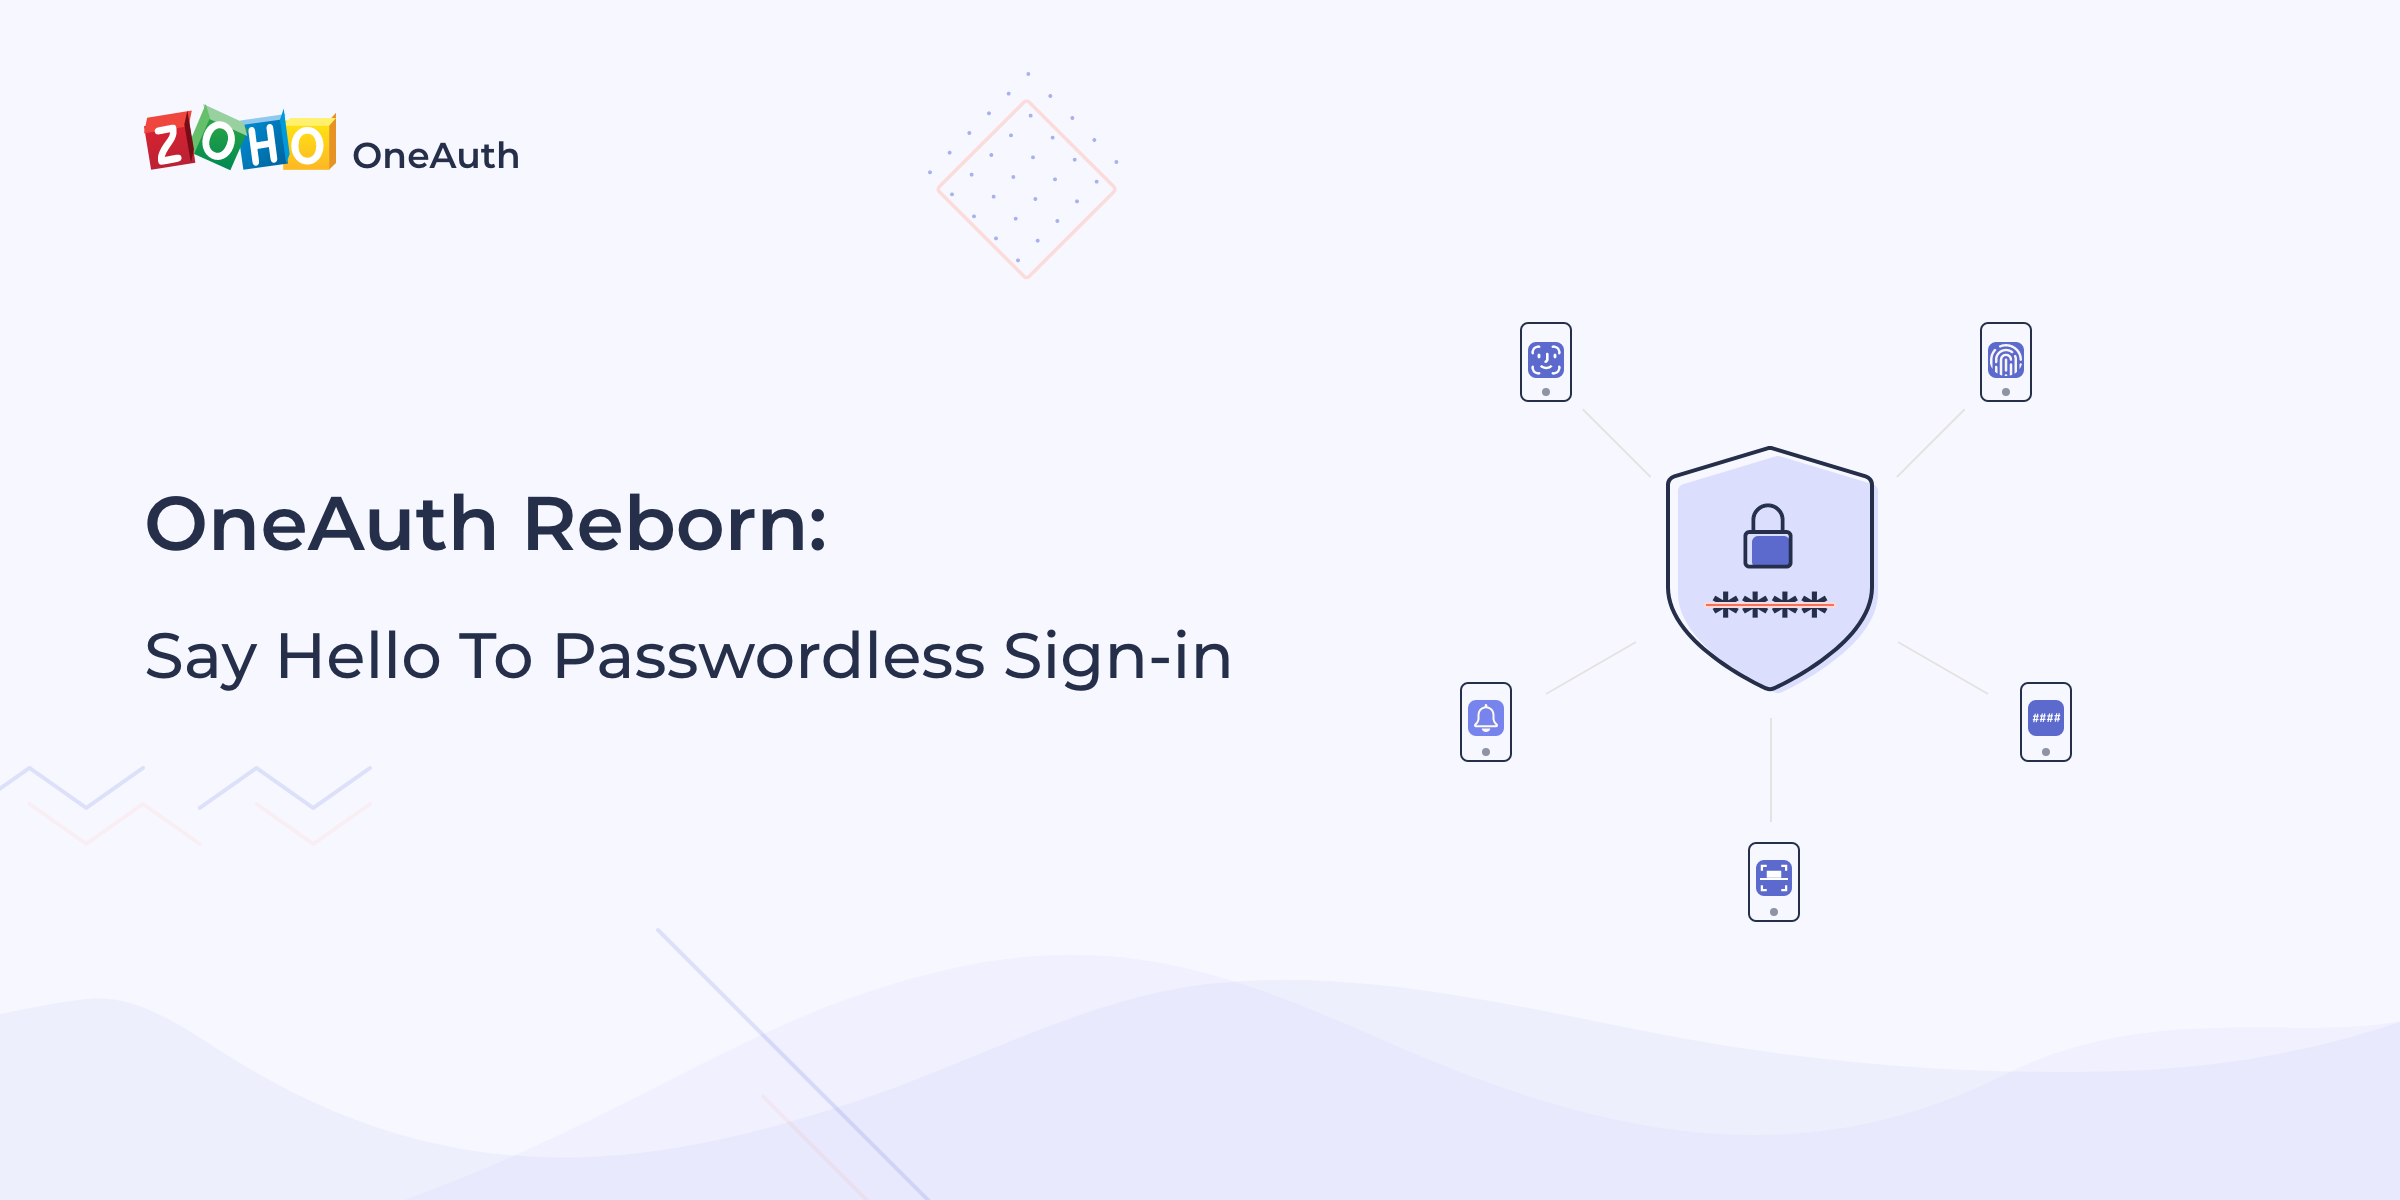 OneAuth Reborn: Say Hello To Passwordless Sign-in